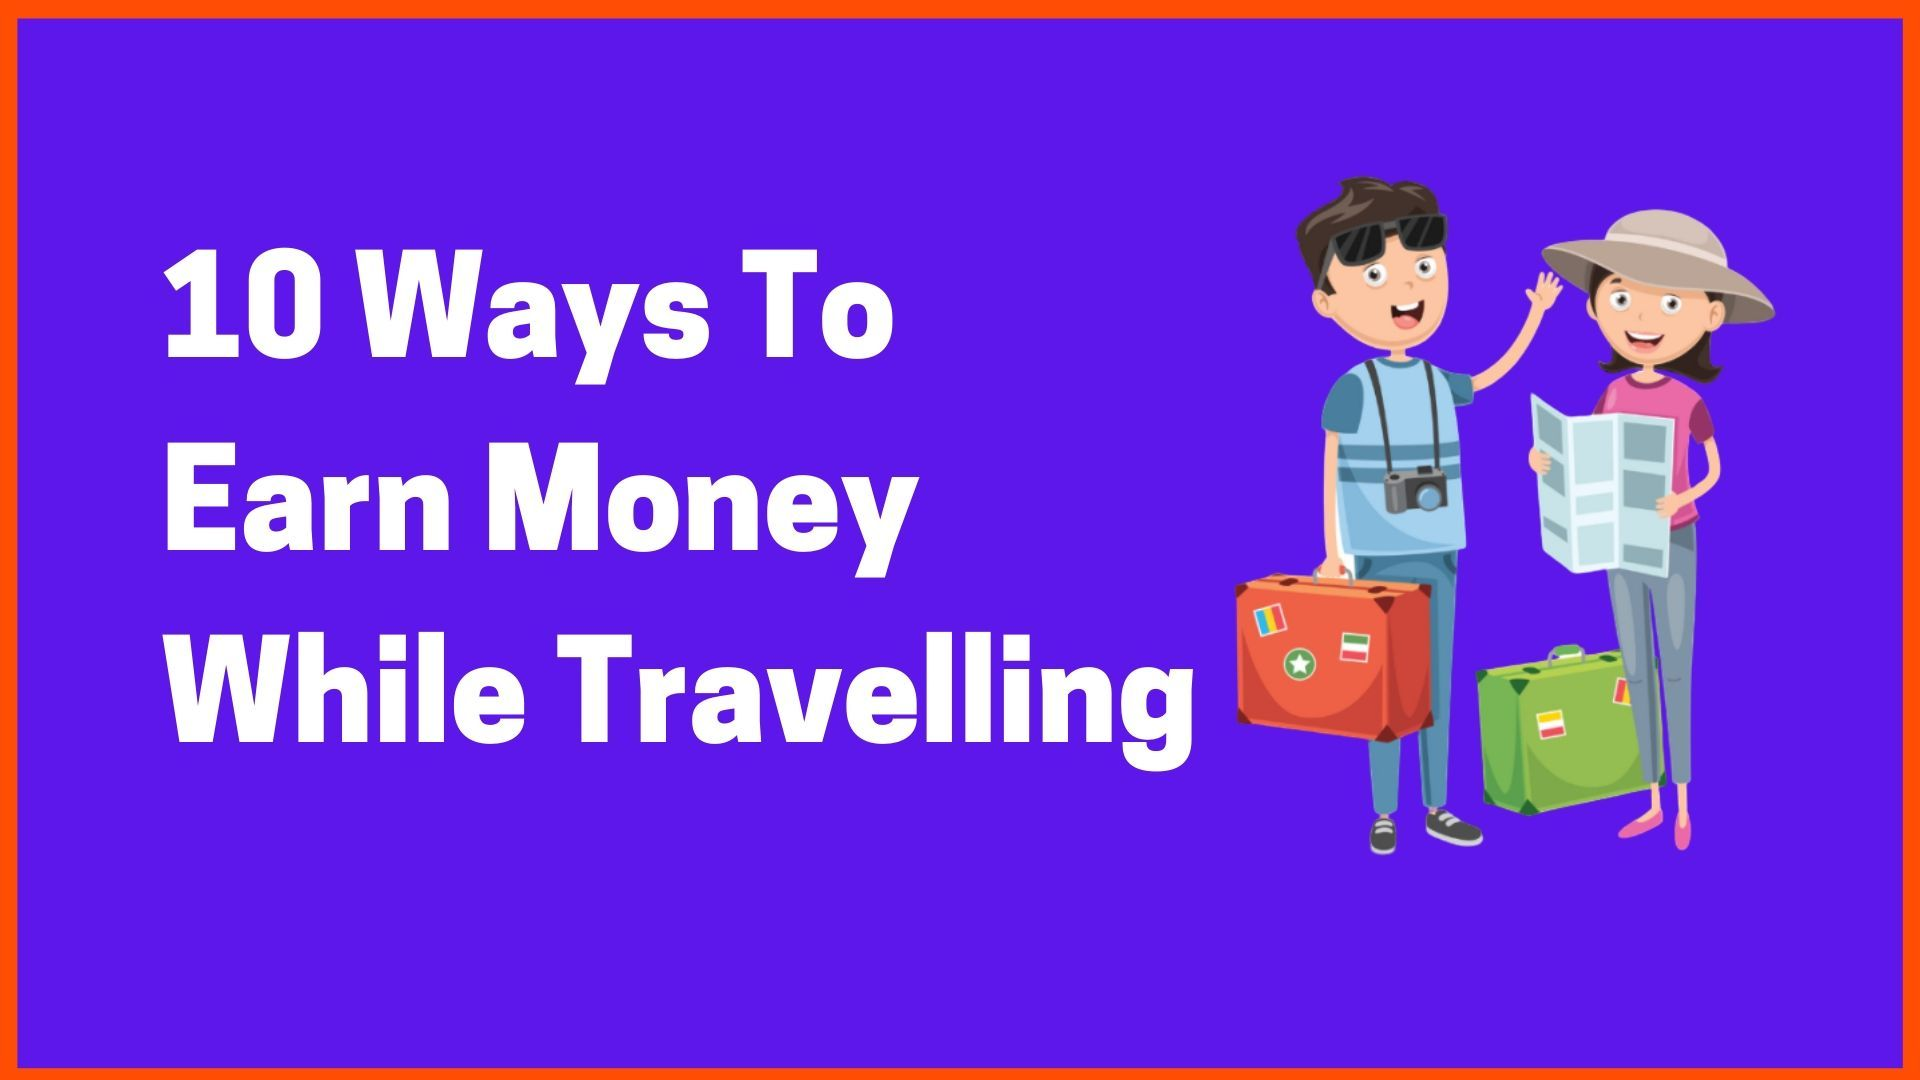 10 Ways To Earn Money While Travelling